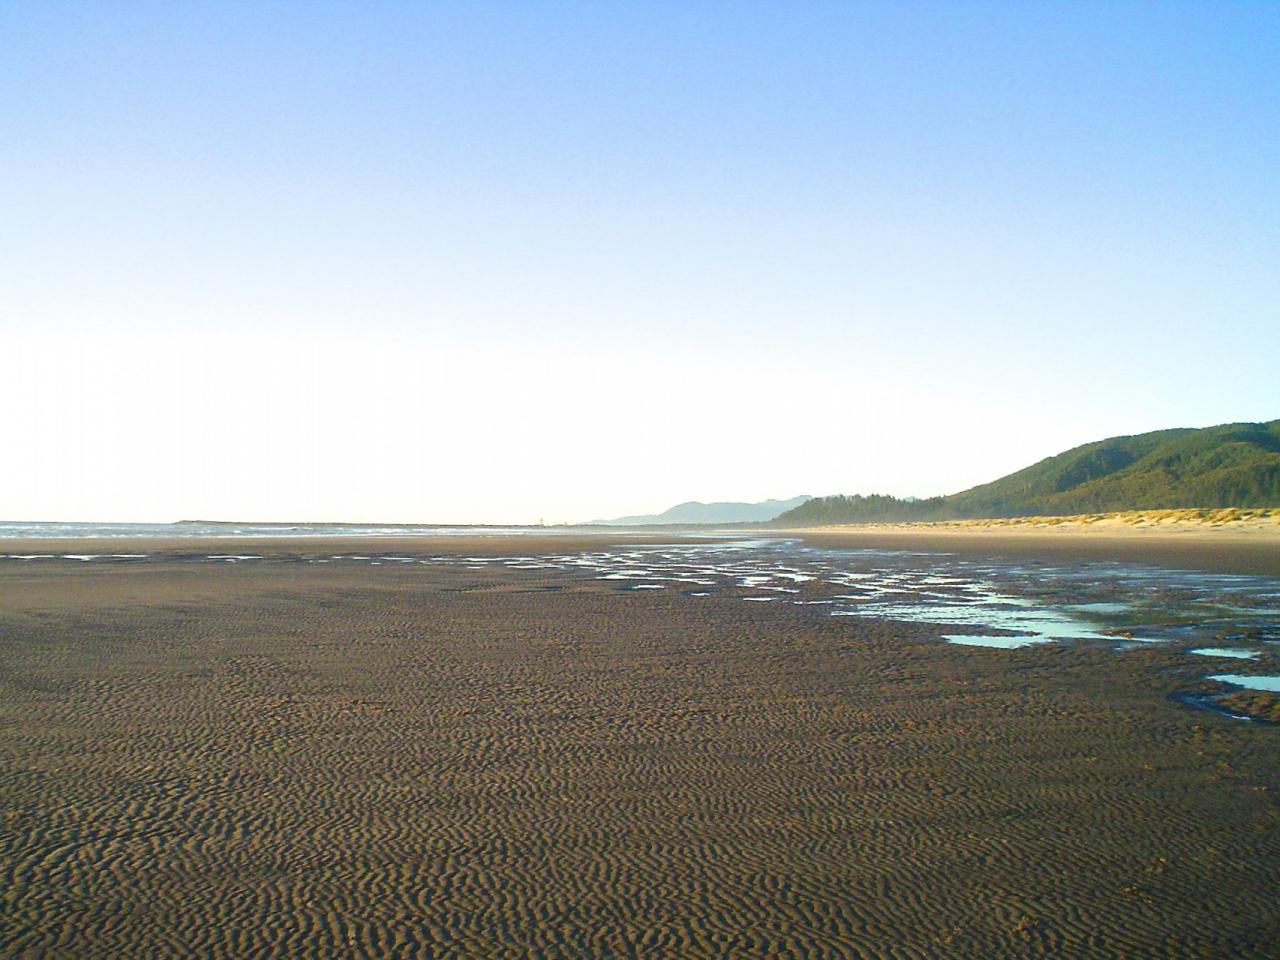 Fall equinox on the south end of Mile 289 looking to the south jetty of Tillamook Bay.